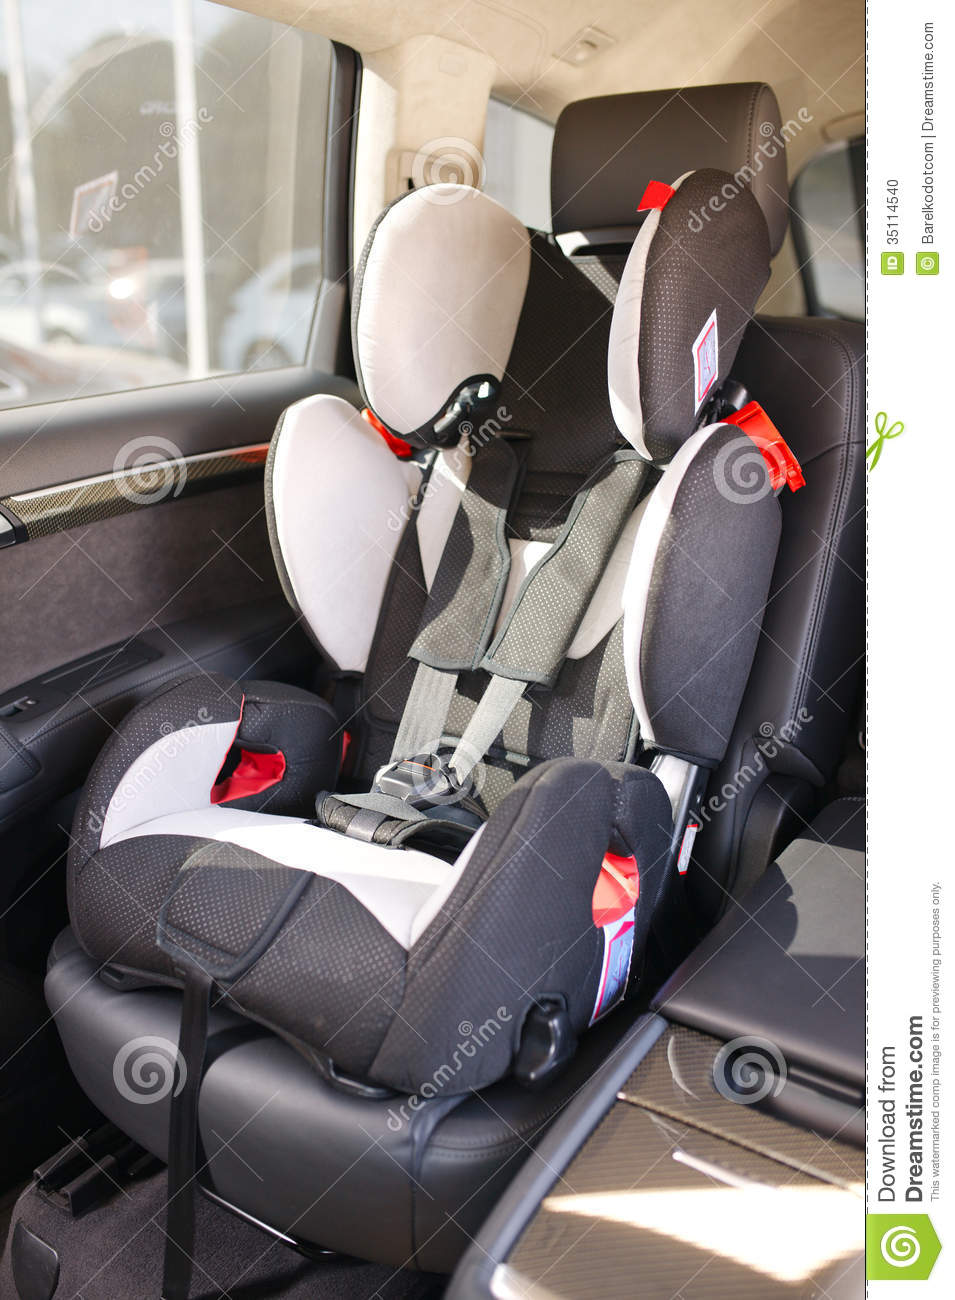 Baby Car Seat Stock Photo Image 35114540